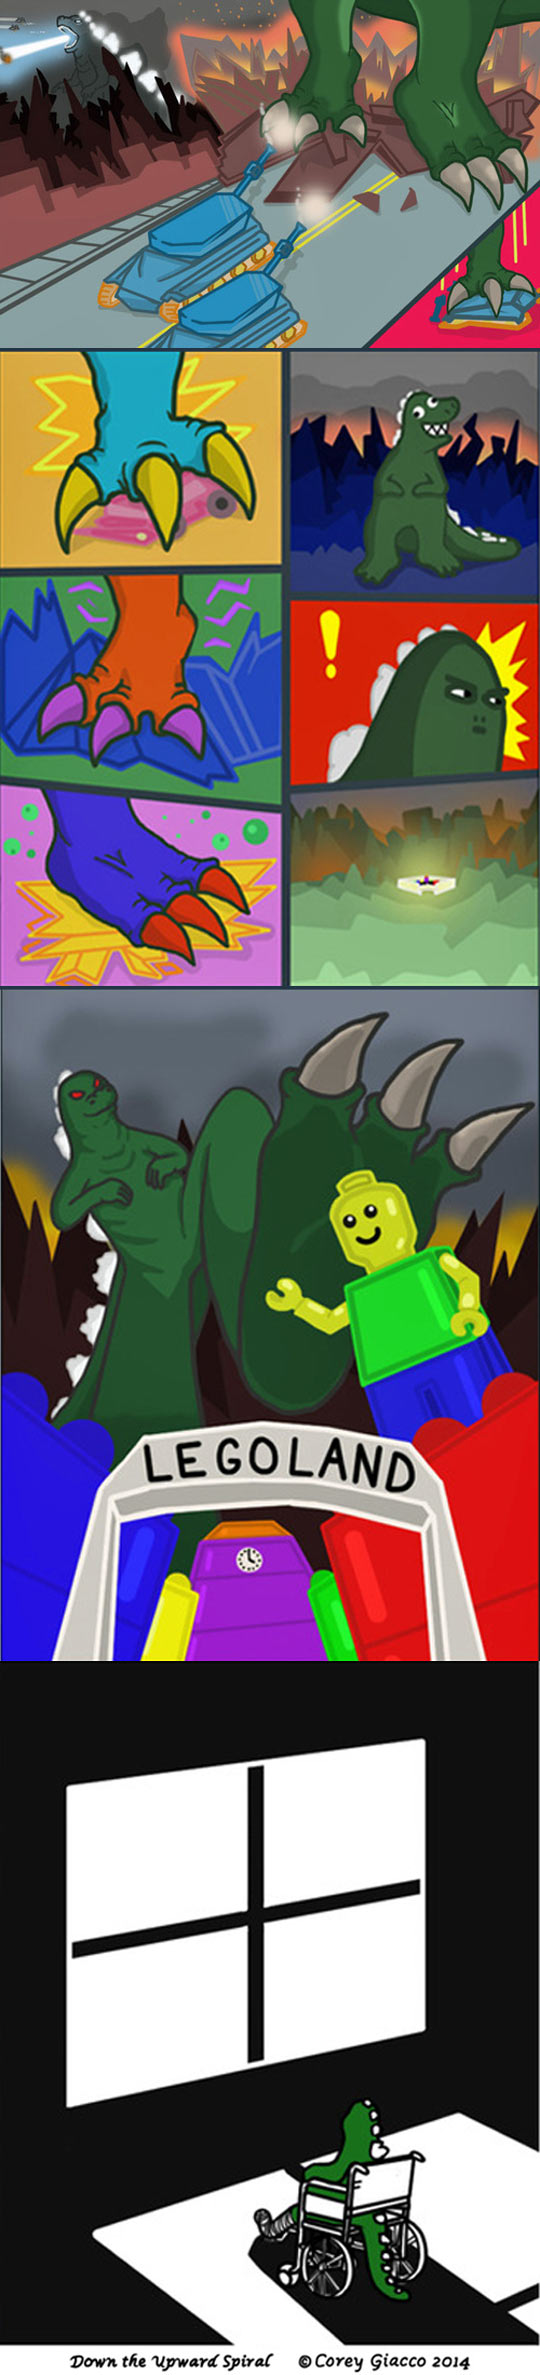 funny-Godzilla-tank-destroying-city-comic